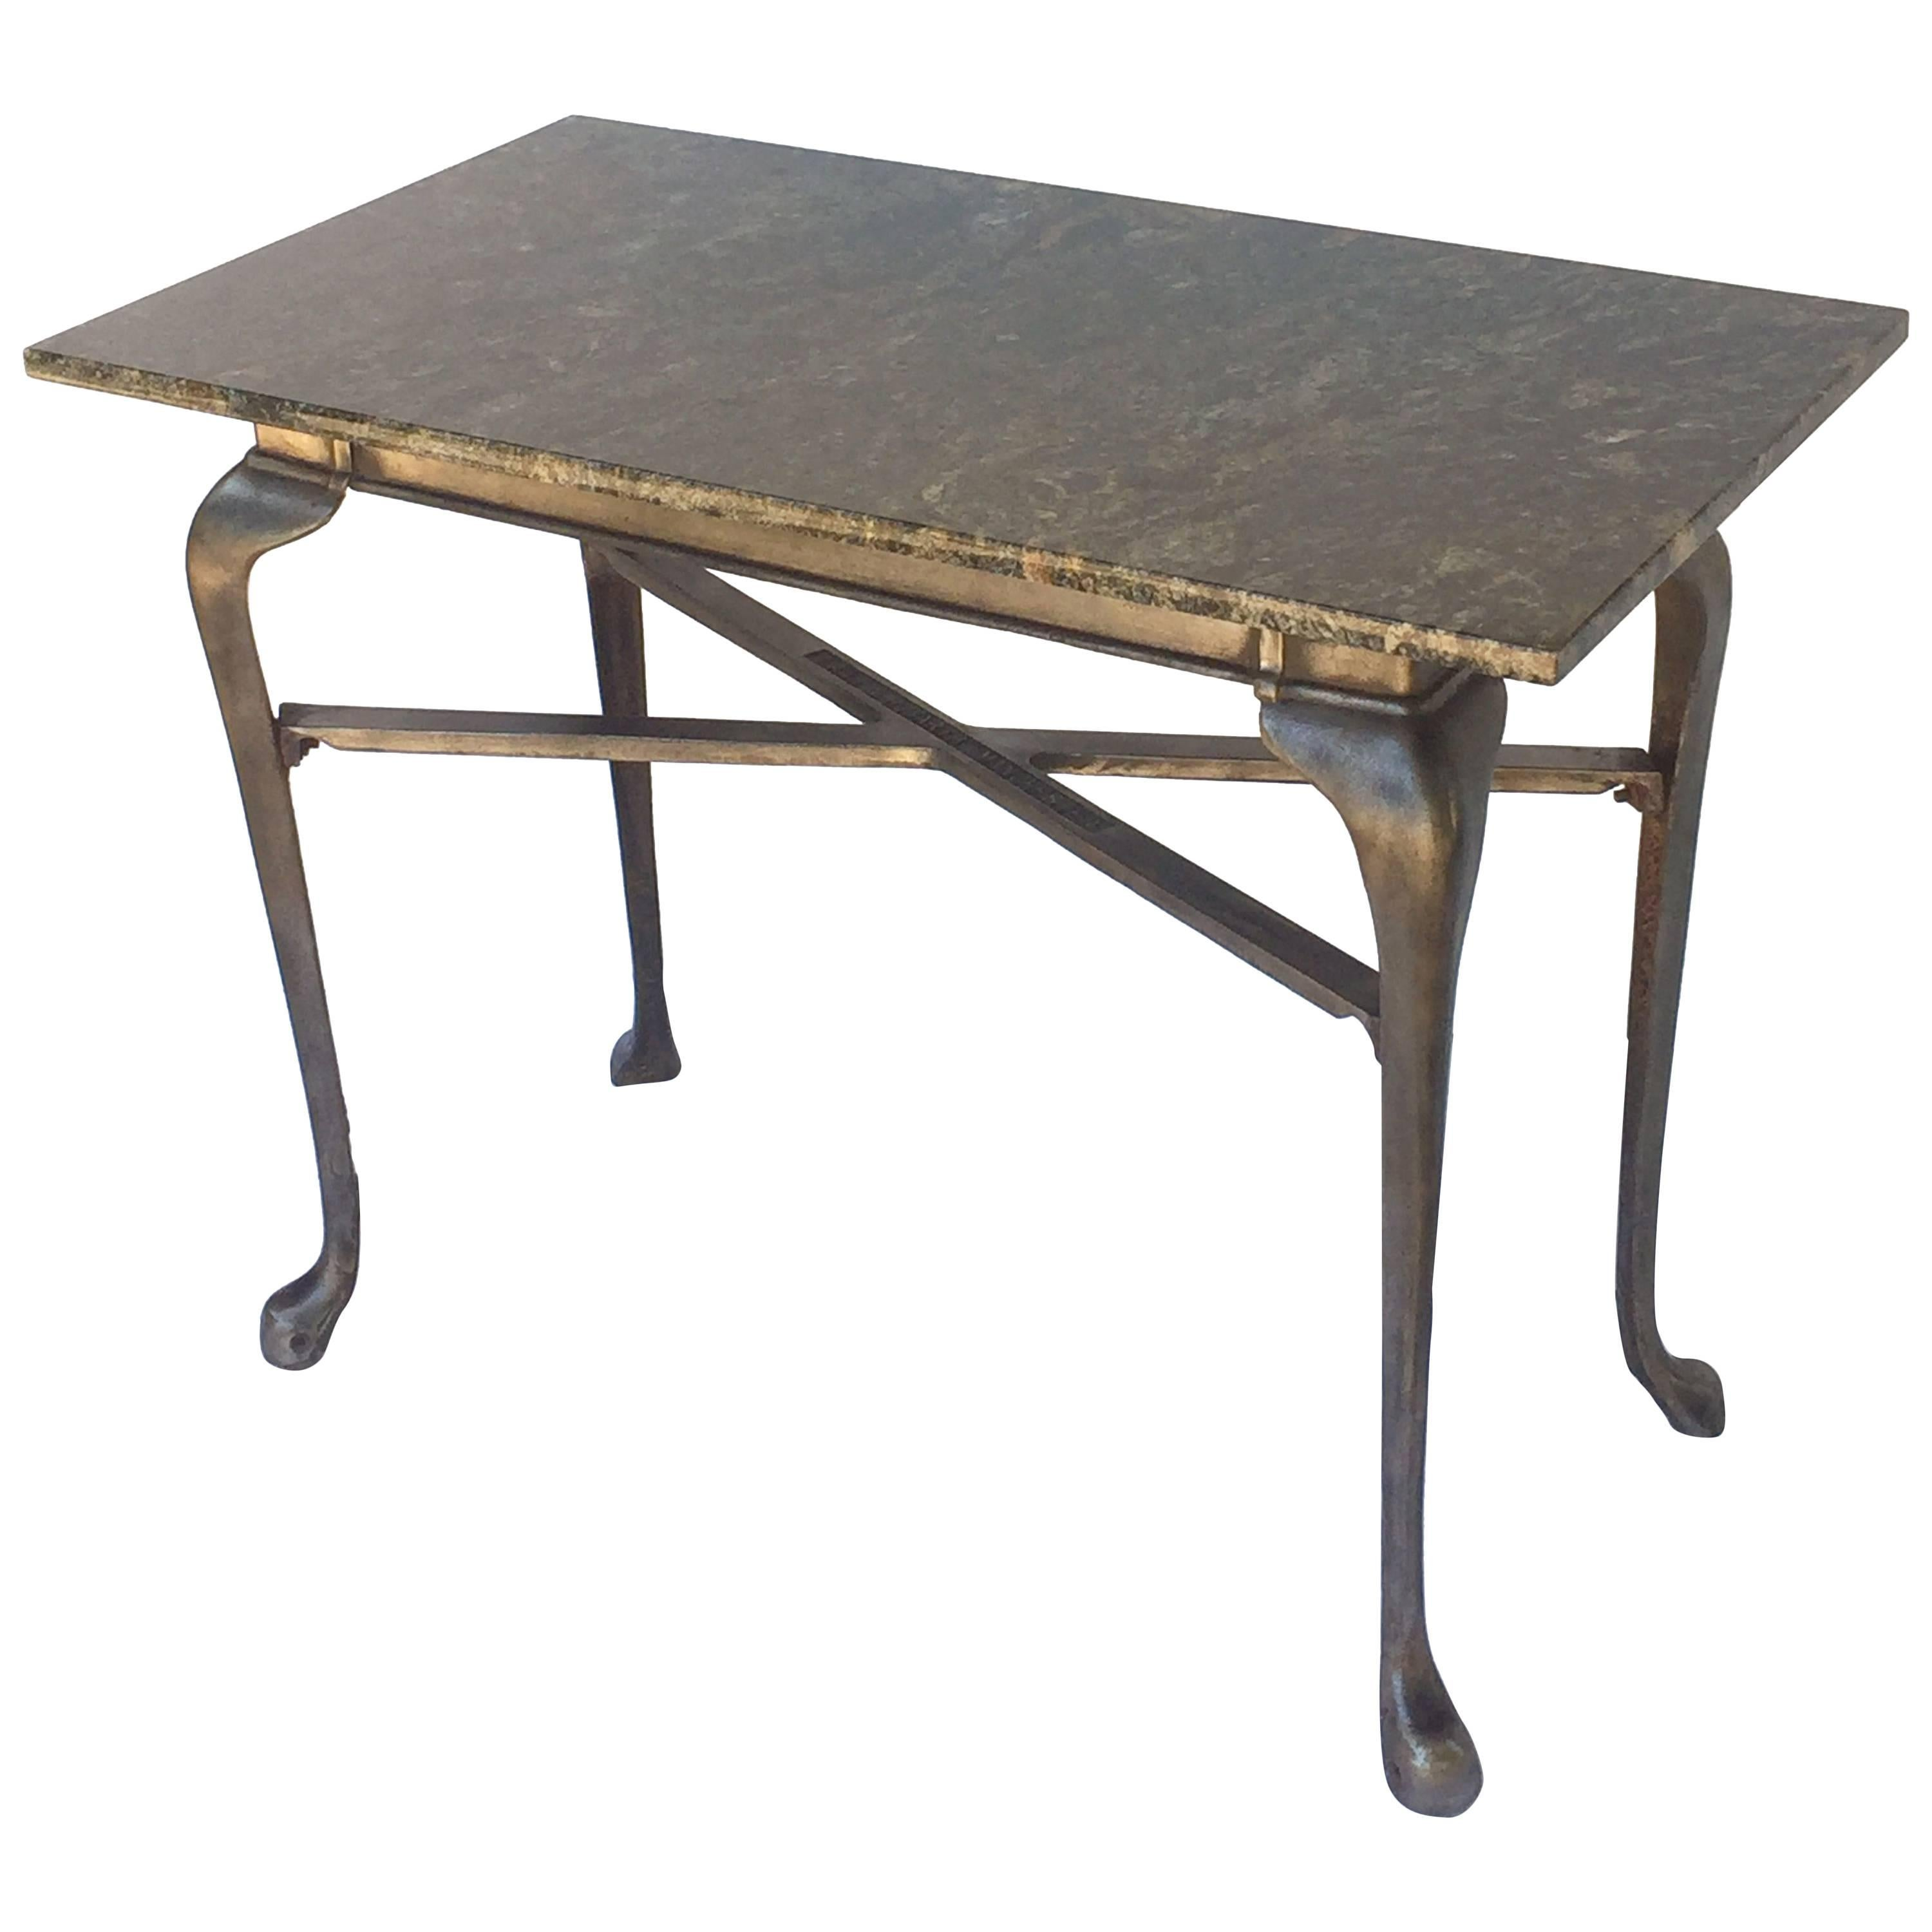 English Pub Bistro Table of Cast Iron with Granite Top